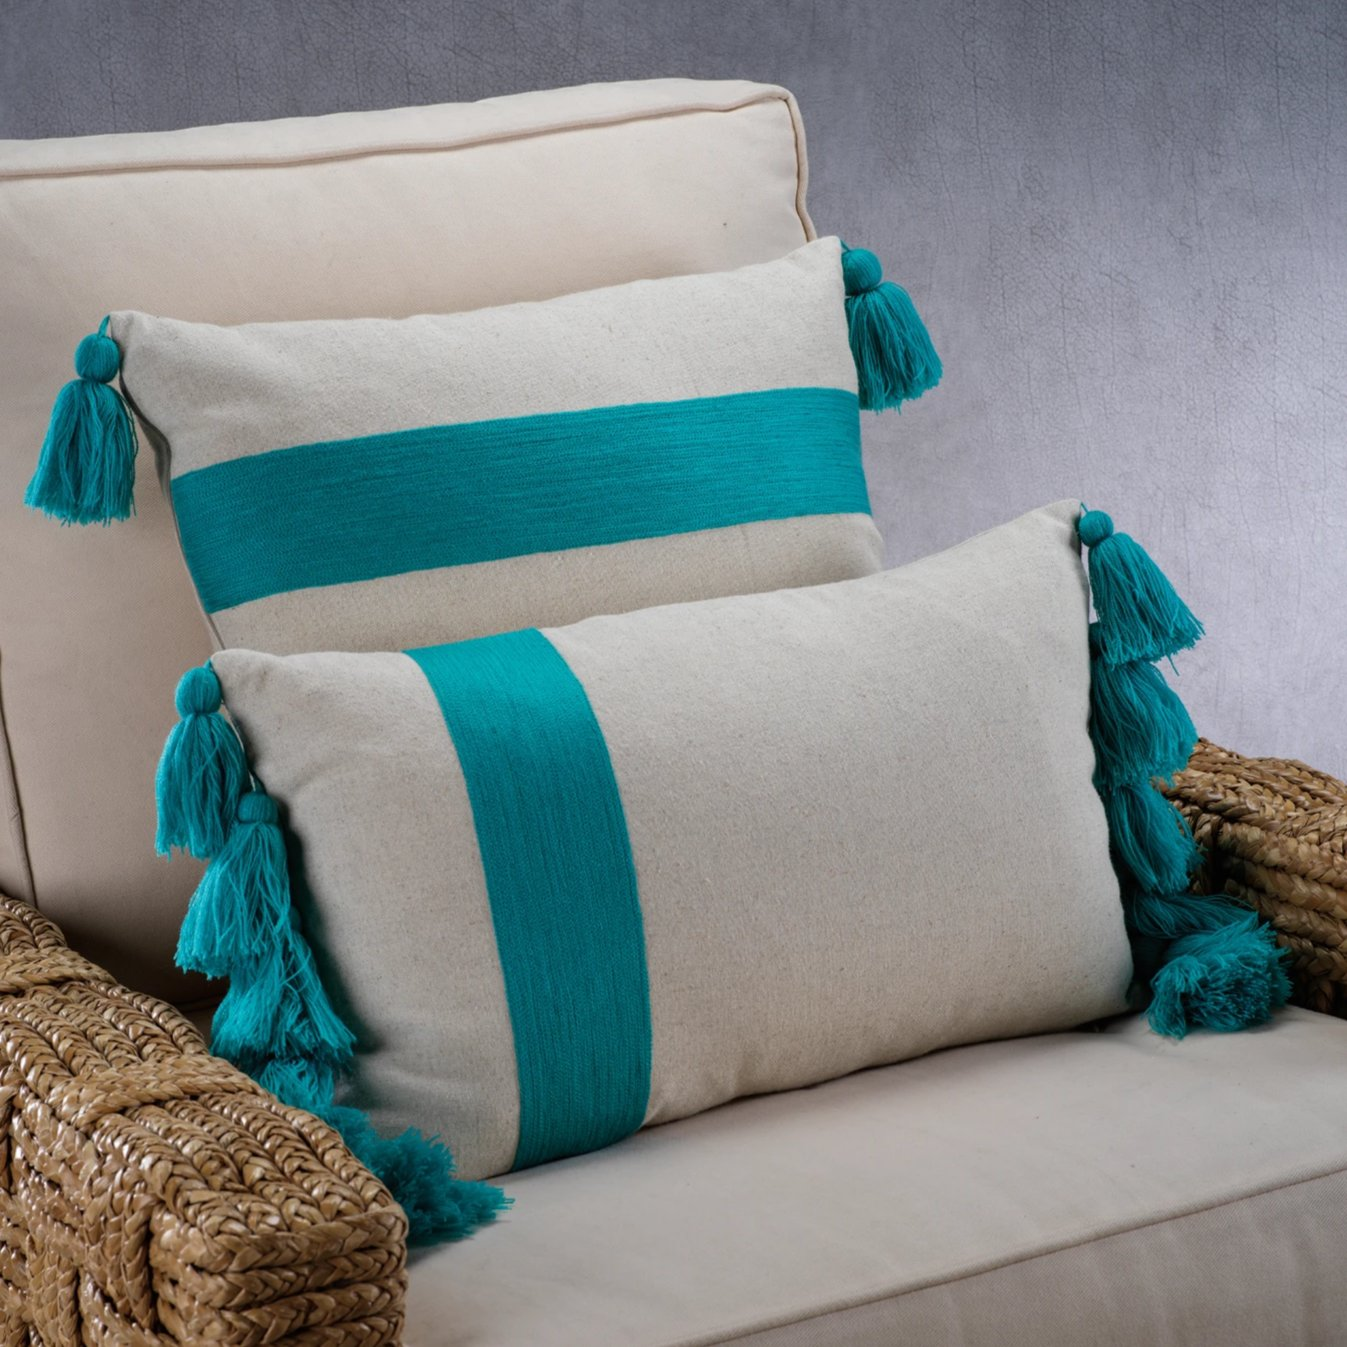 Polignano Embroidered Throw Pillow w/Tassels - Azure